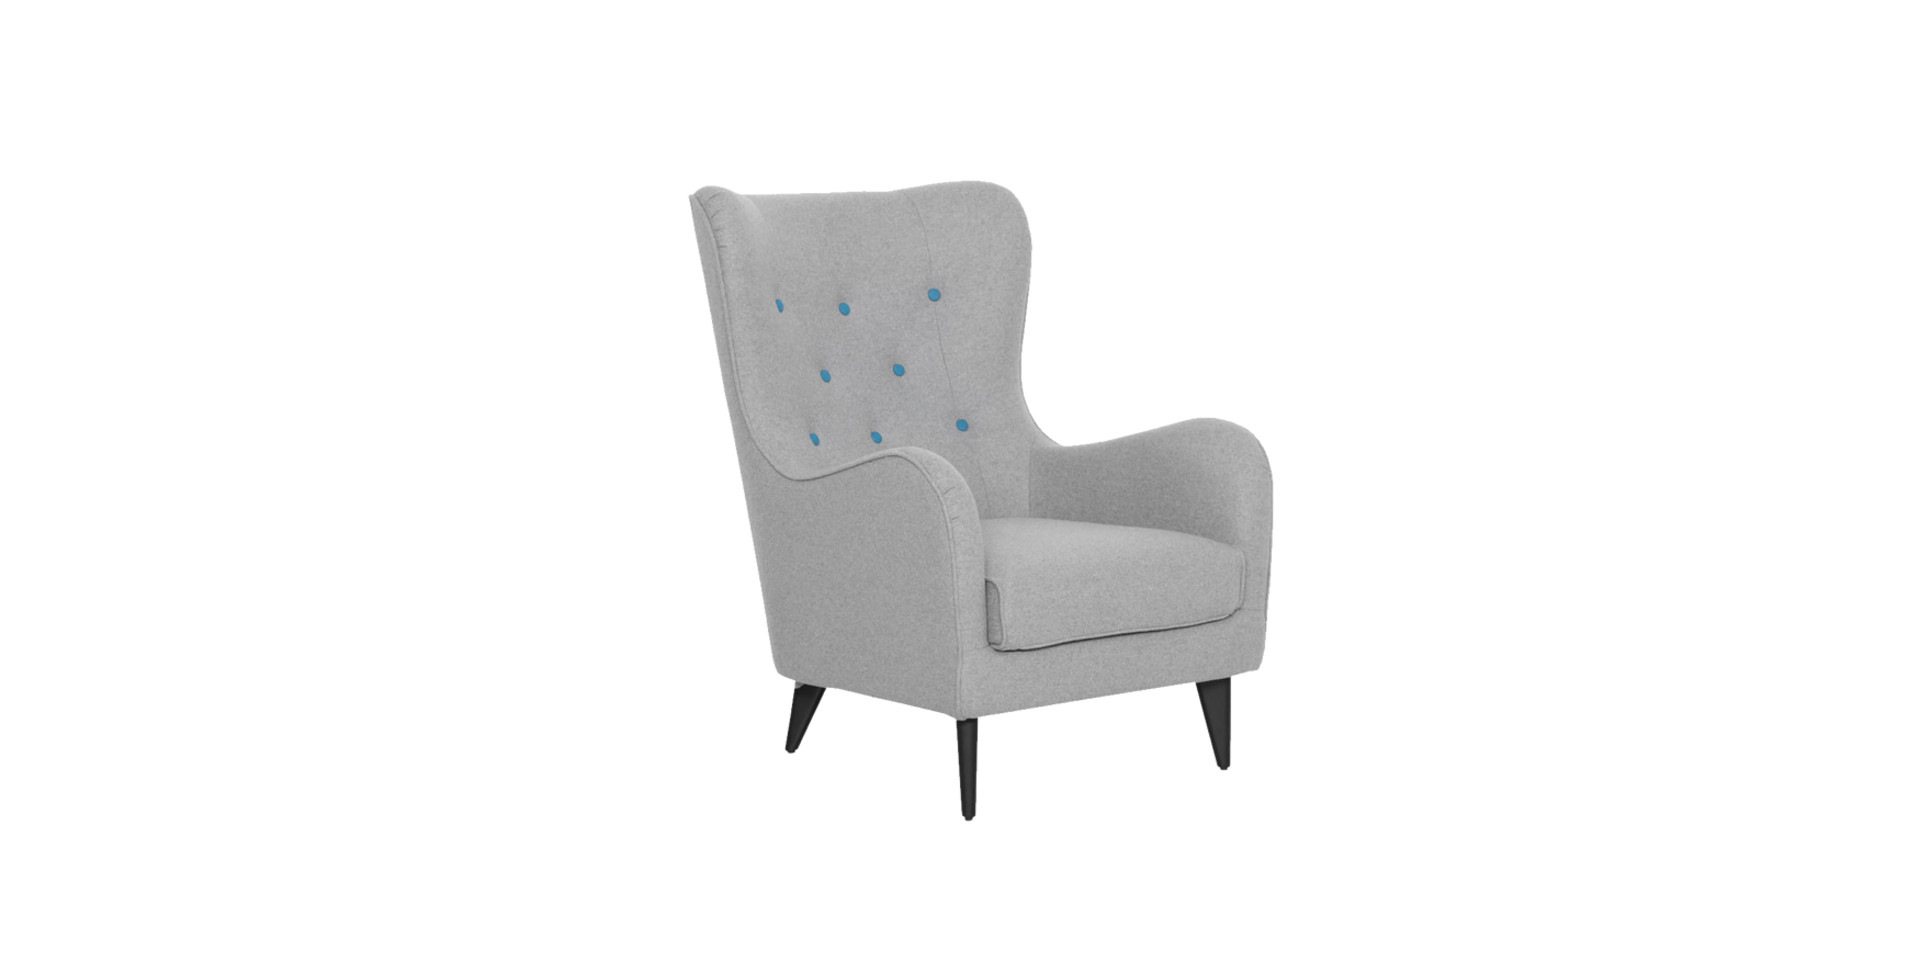 sits-pola-fauteuil-armchair_panno1000_light_grey_buttons_panno2240_turquoise_2